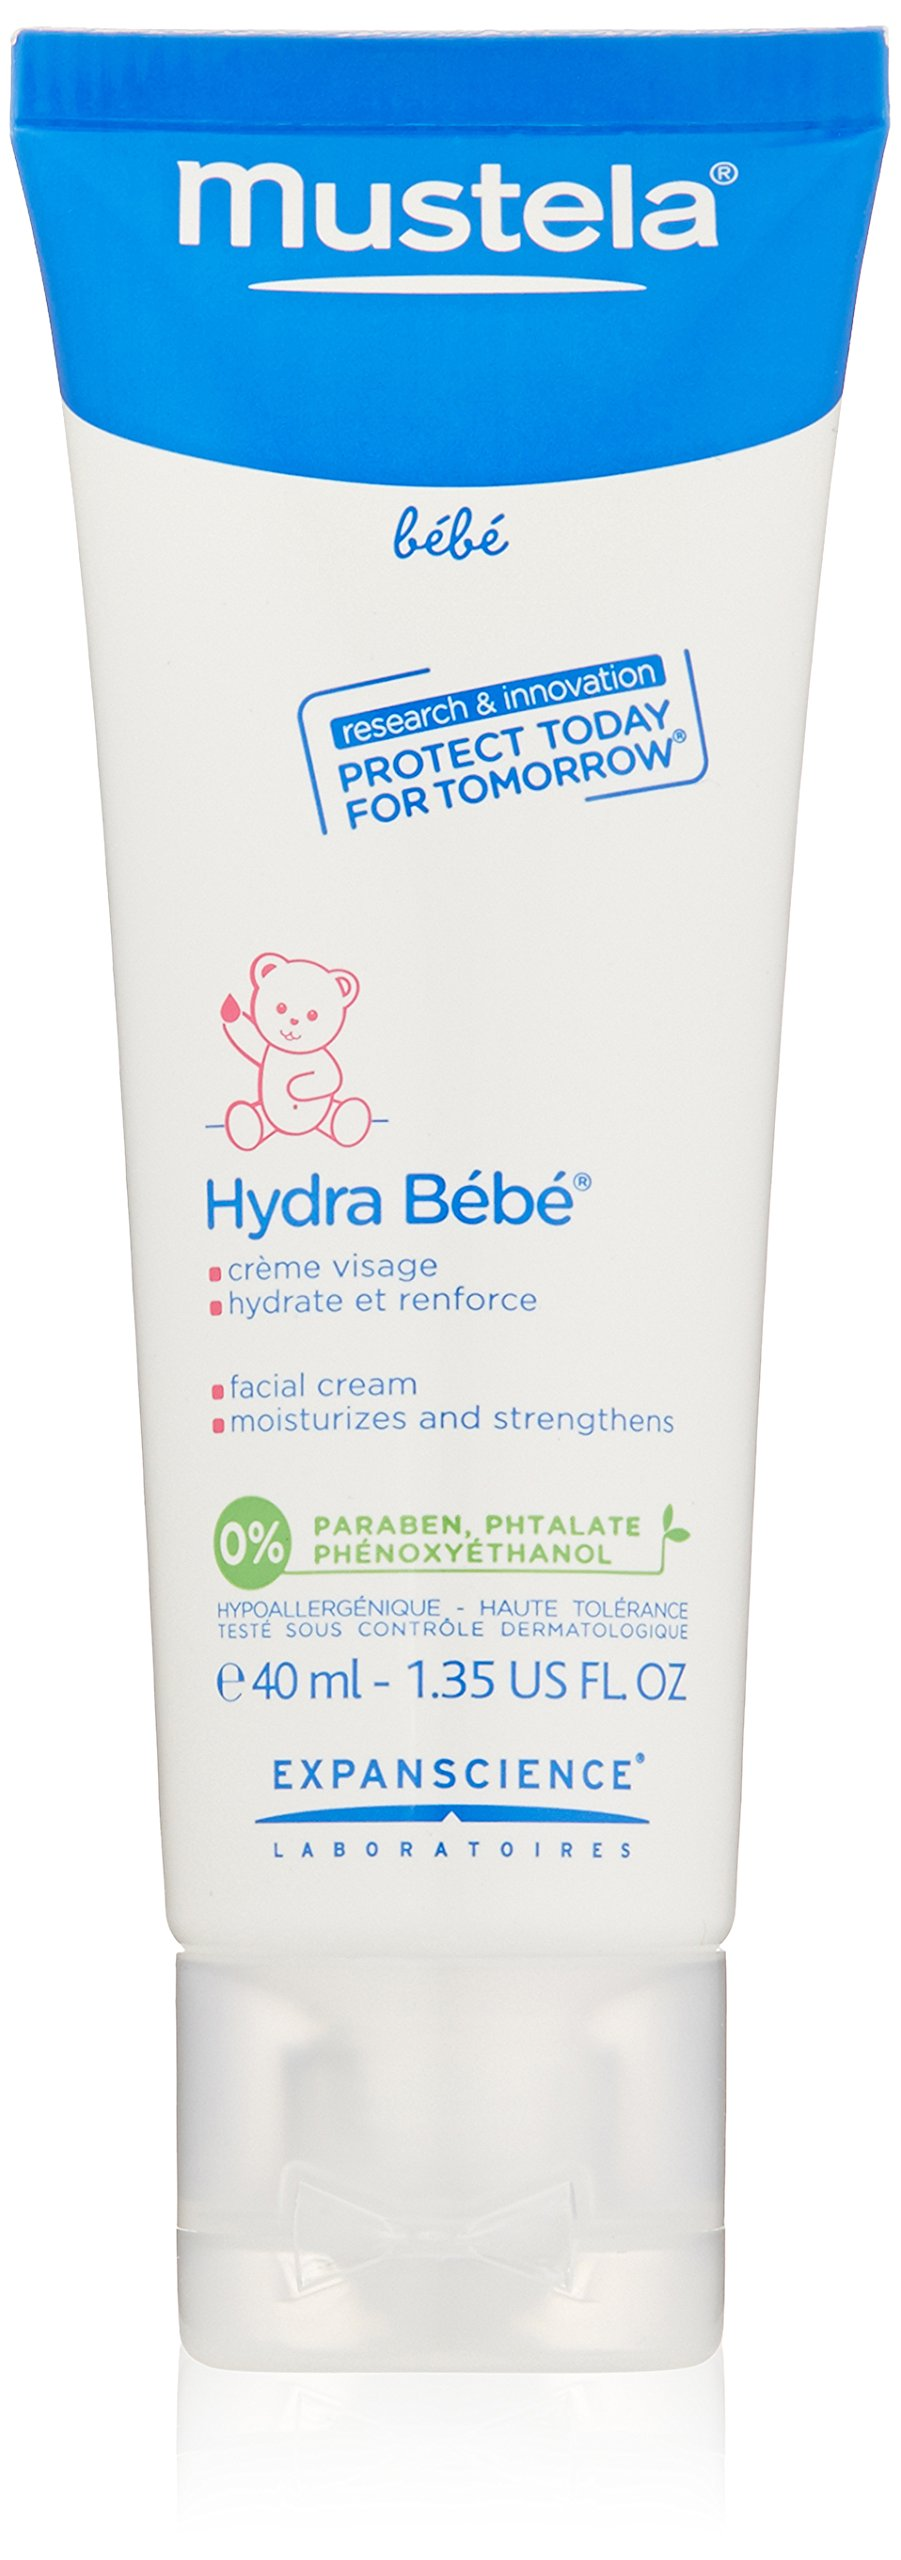 Amazon.com: Mustela Hydra Bebe Body Lotion, 10.14 fl. oz